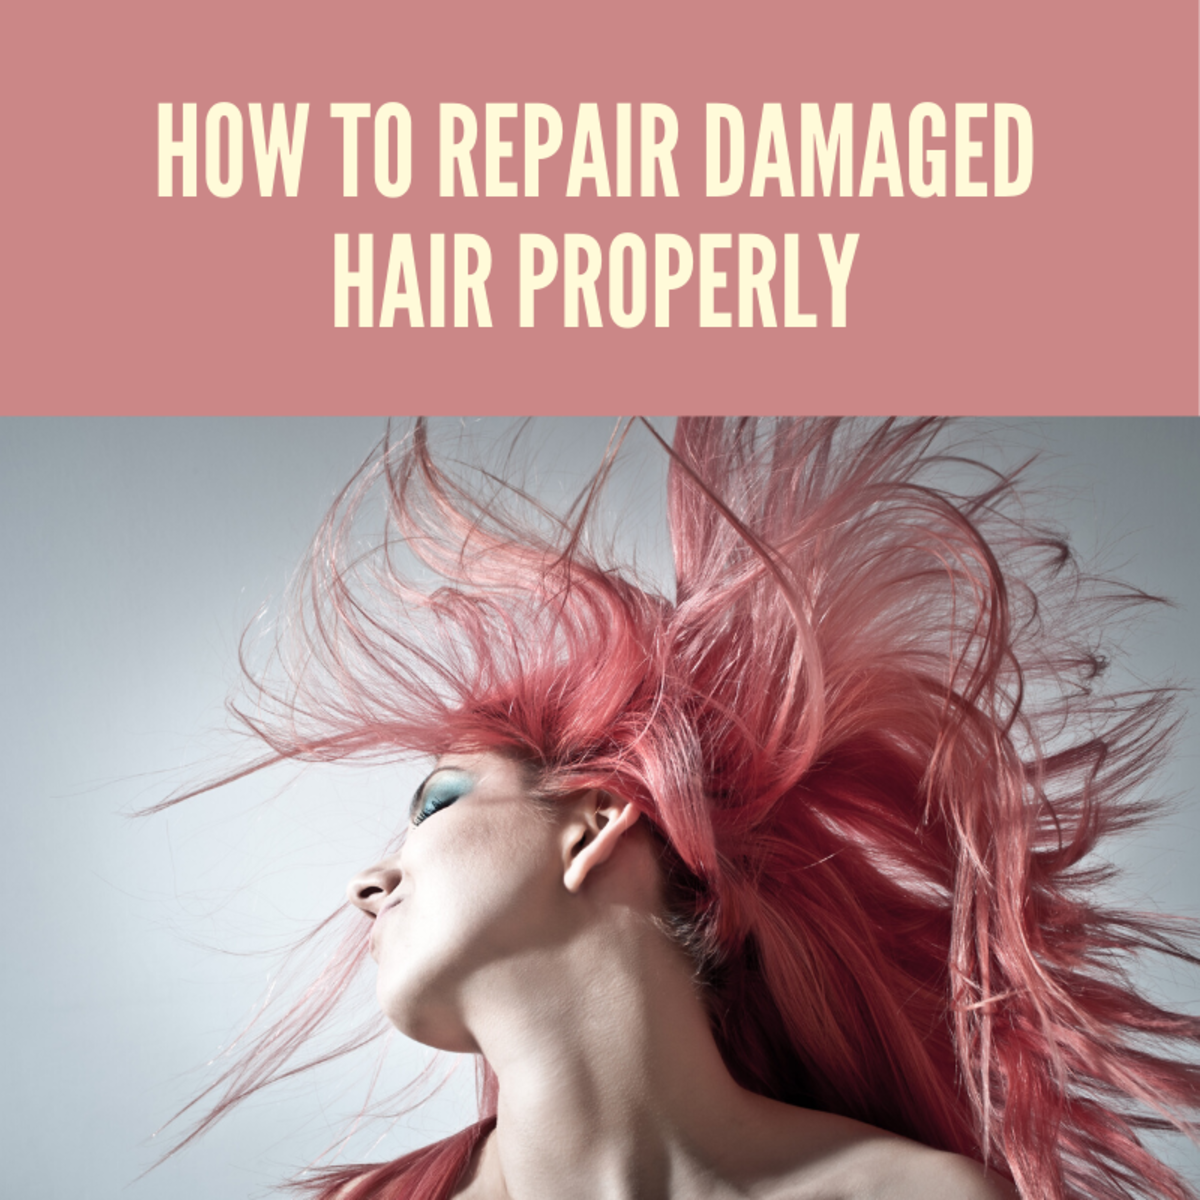 How to Repair Damaged Hair Properly